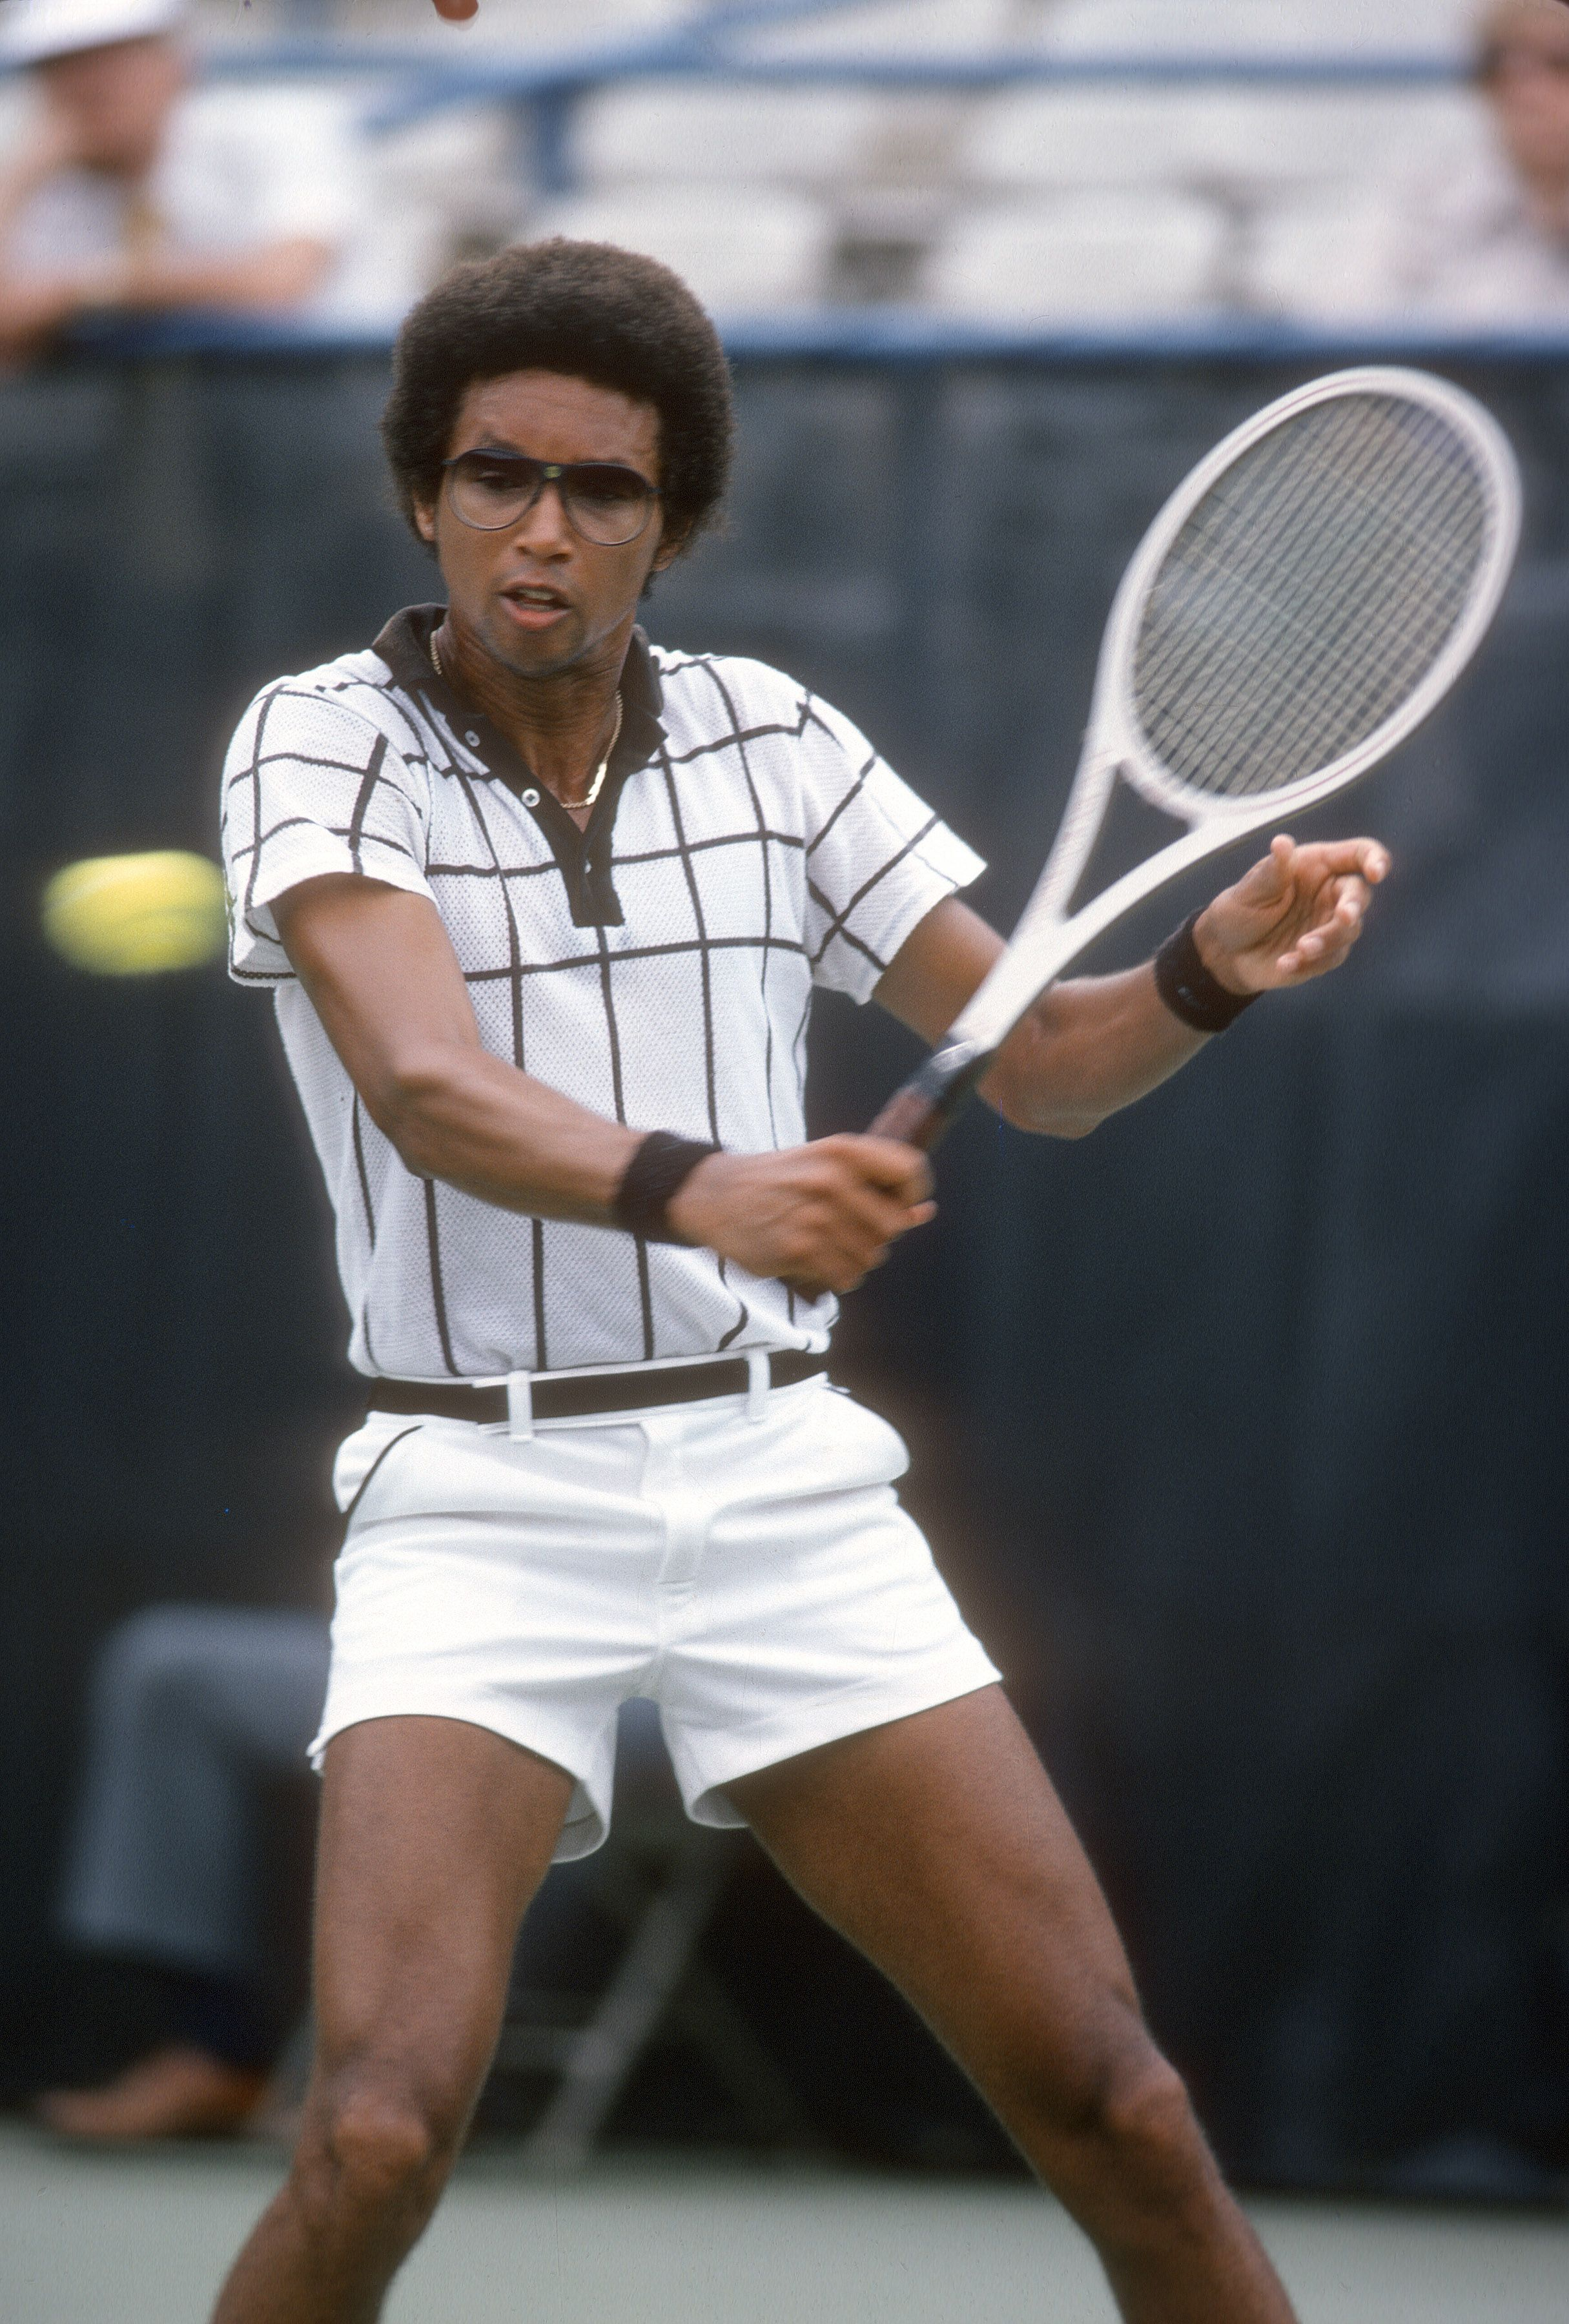 Arthur Ashe Movie: News, Cast, Premiere Date, Trailer & More